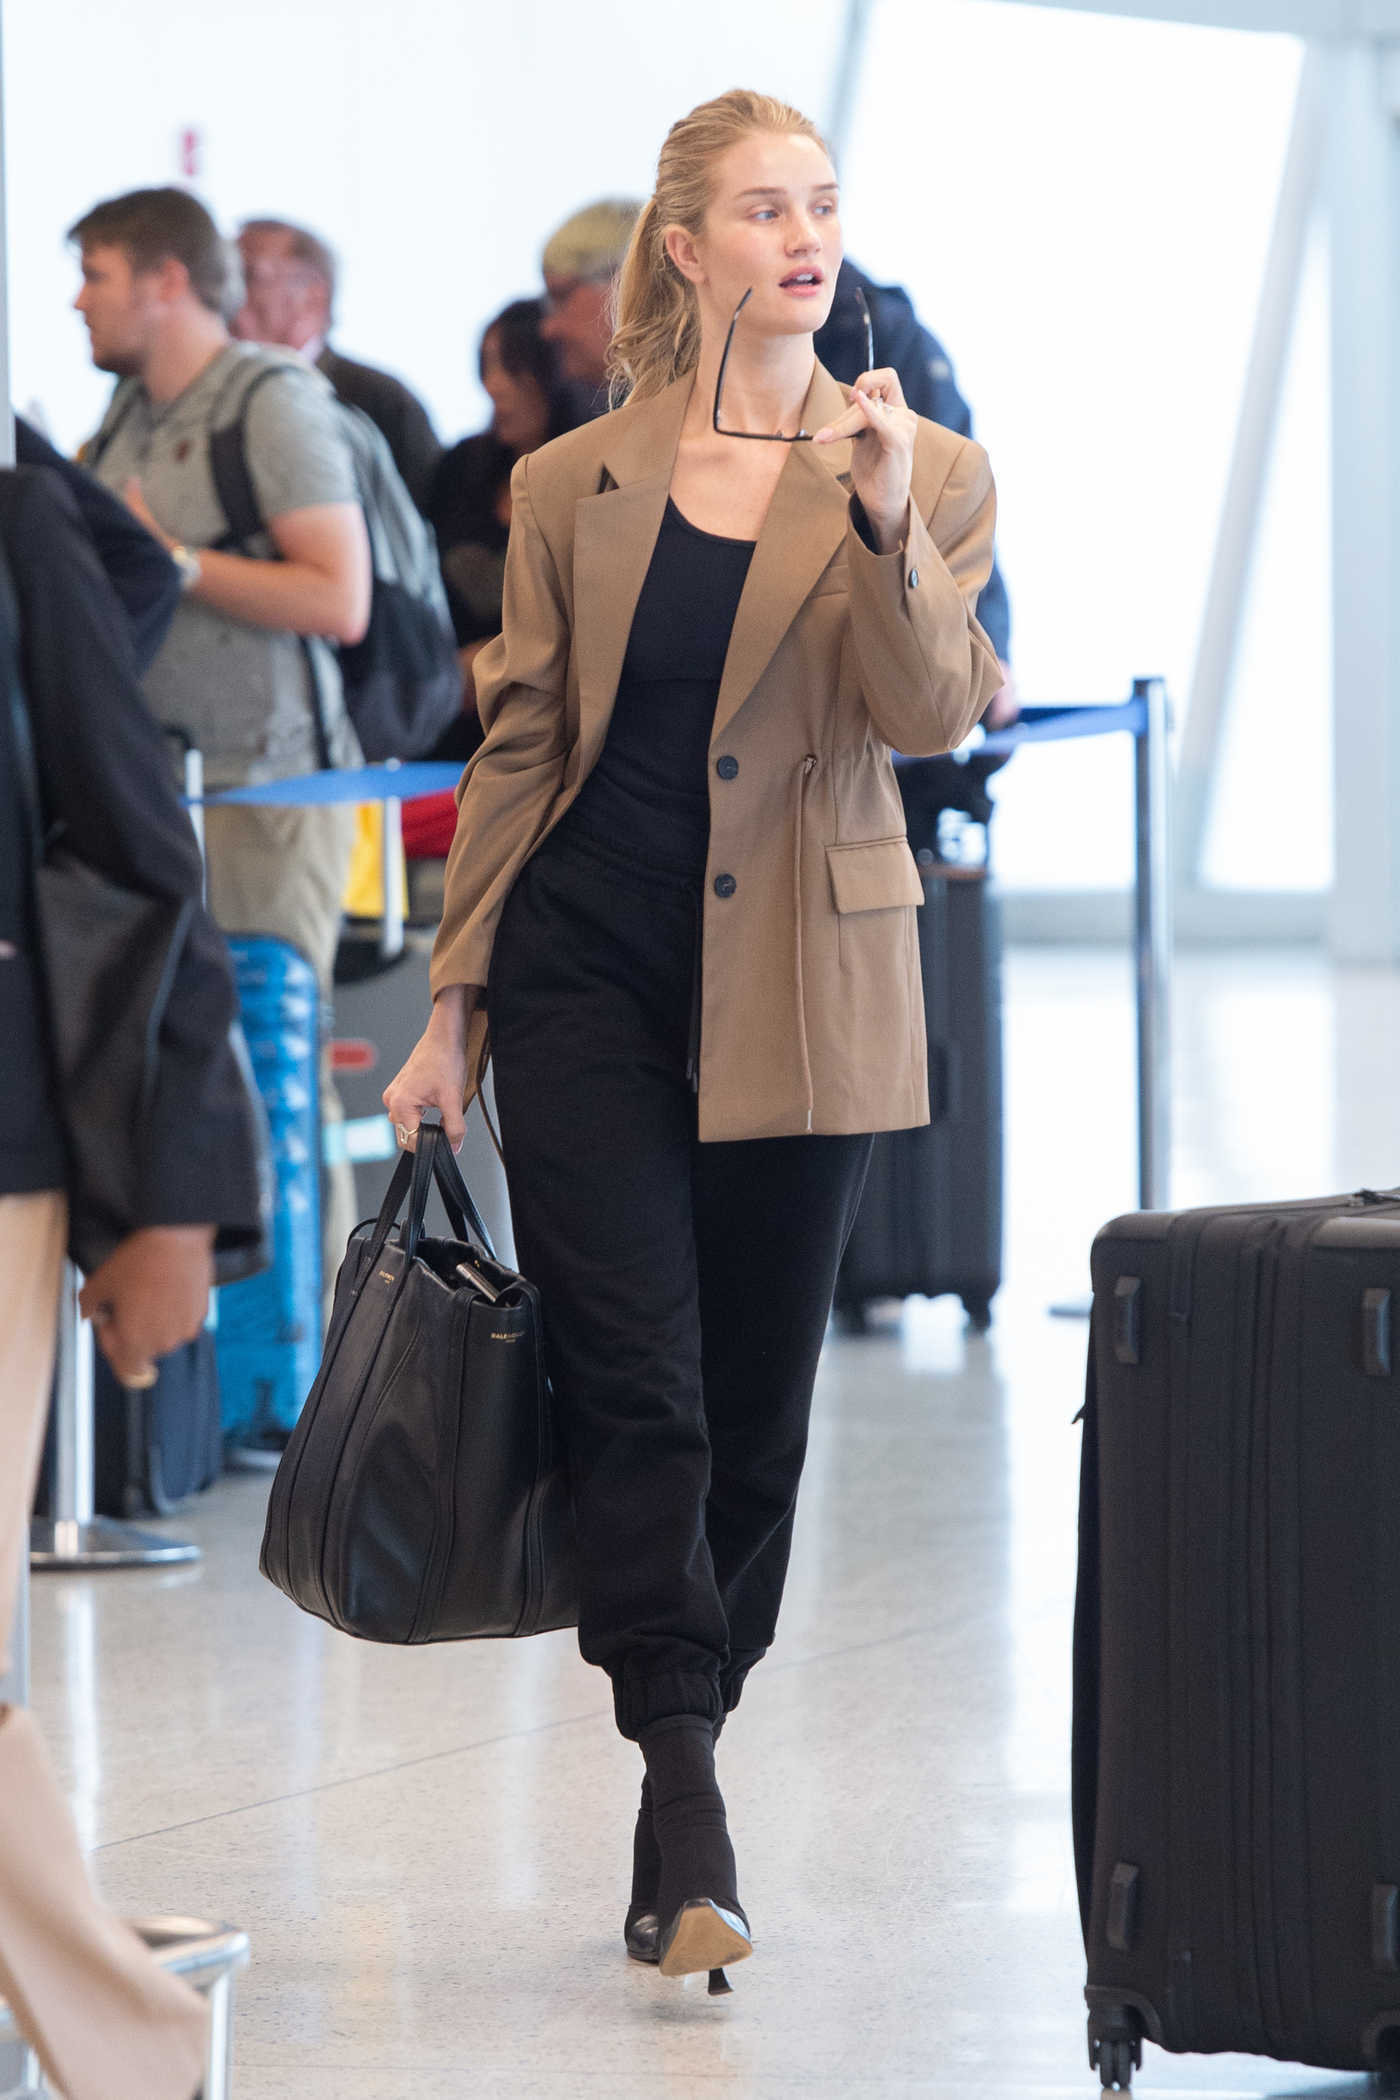 Rosie Huntington-Whiteley in a Beige Jacket Arrives at JFK Airport in NYC 09/11/2018